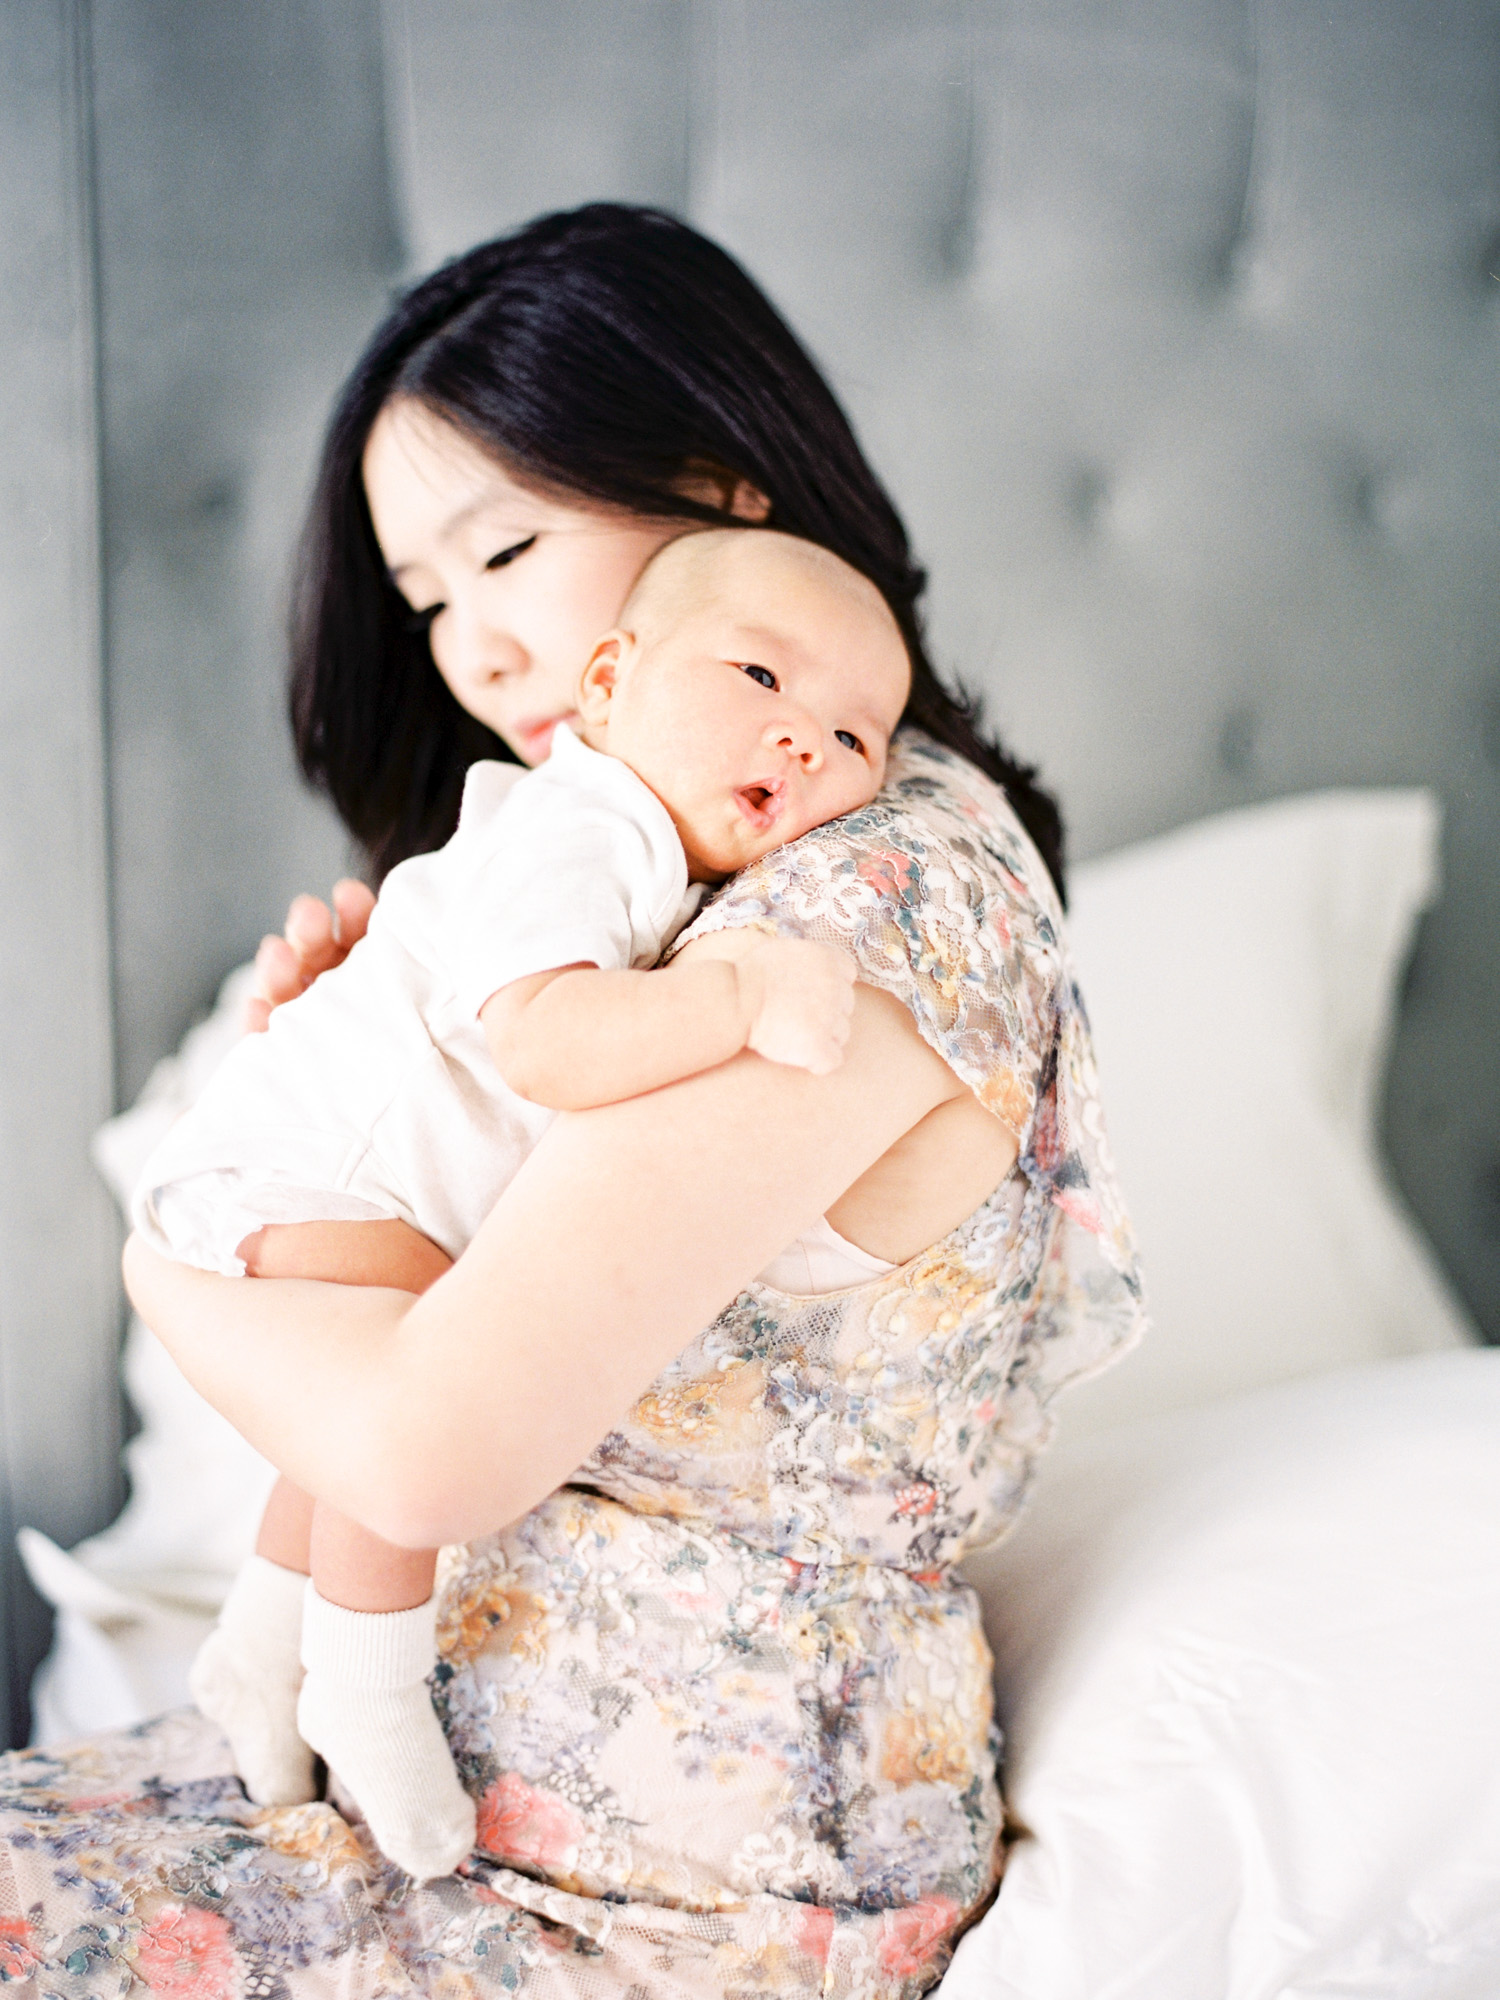 newborn-baby-girl-film photography-styling-jakarta-6.jpg